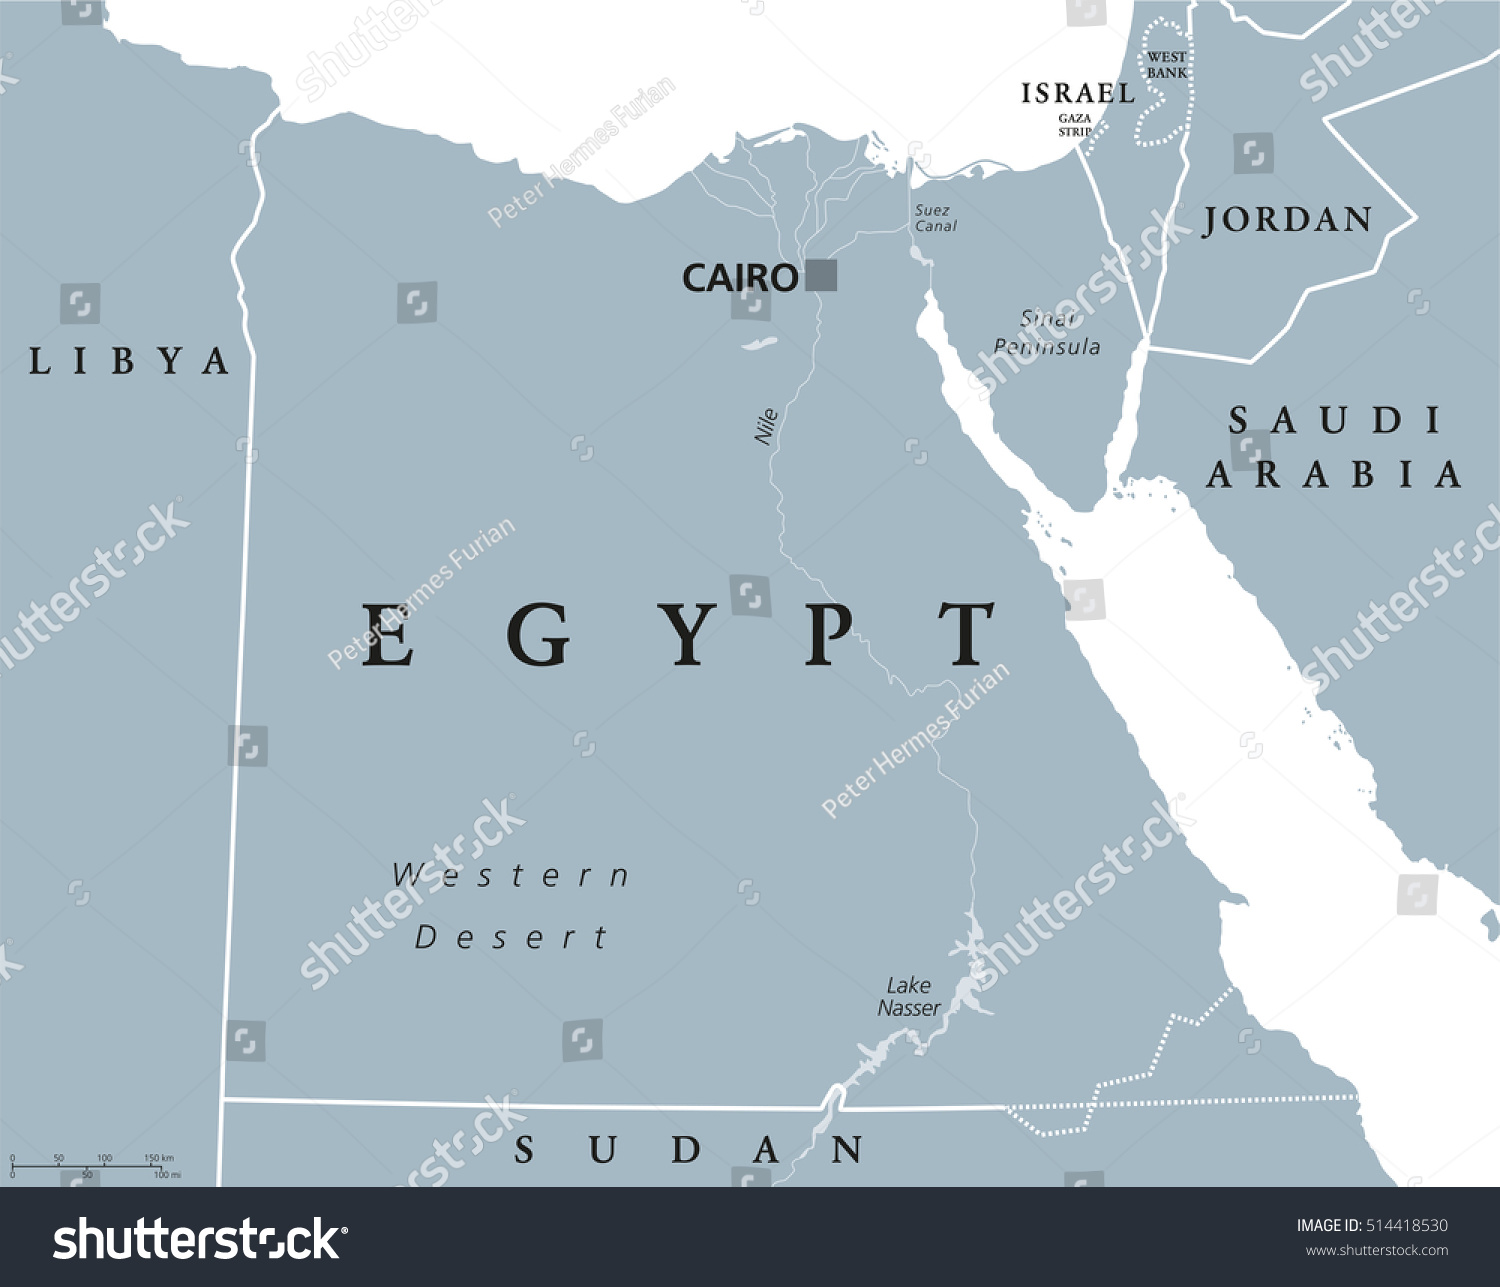 Egypt political map capital cairo nile vectores en stock 514418530 egypt political map with capital cairo with nile sinai peninsula and suez canal gumiabroncs Gallery